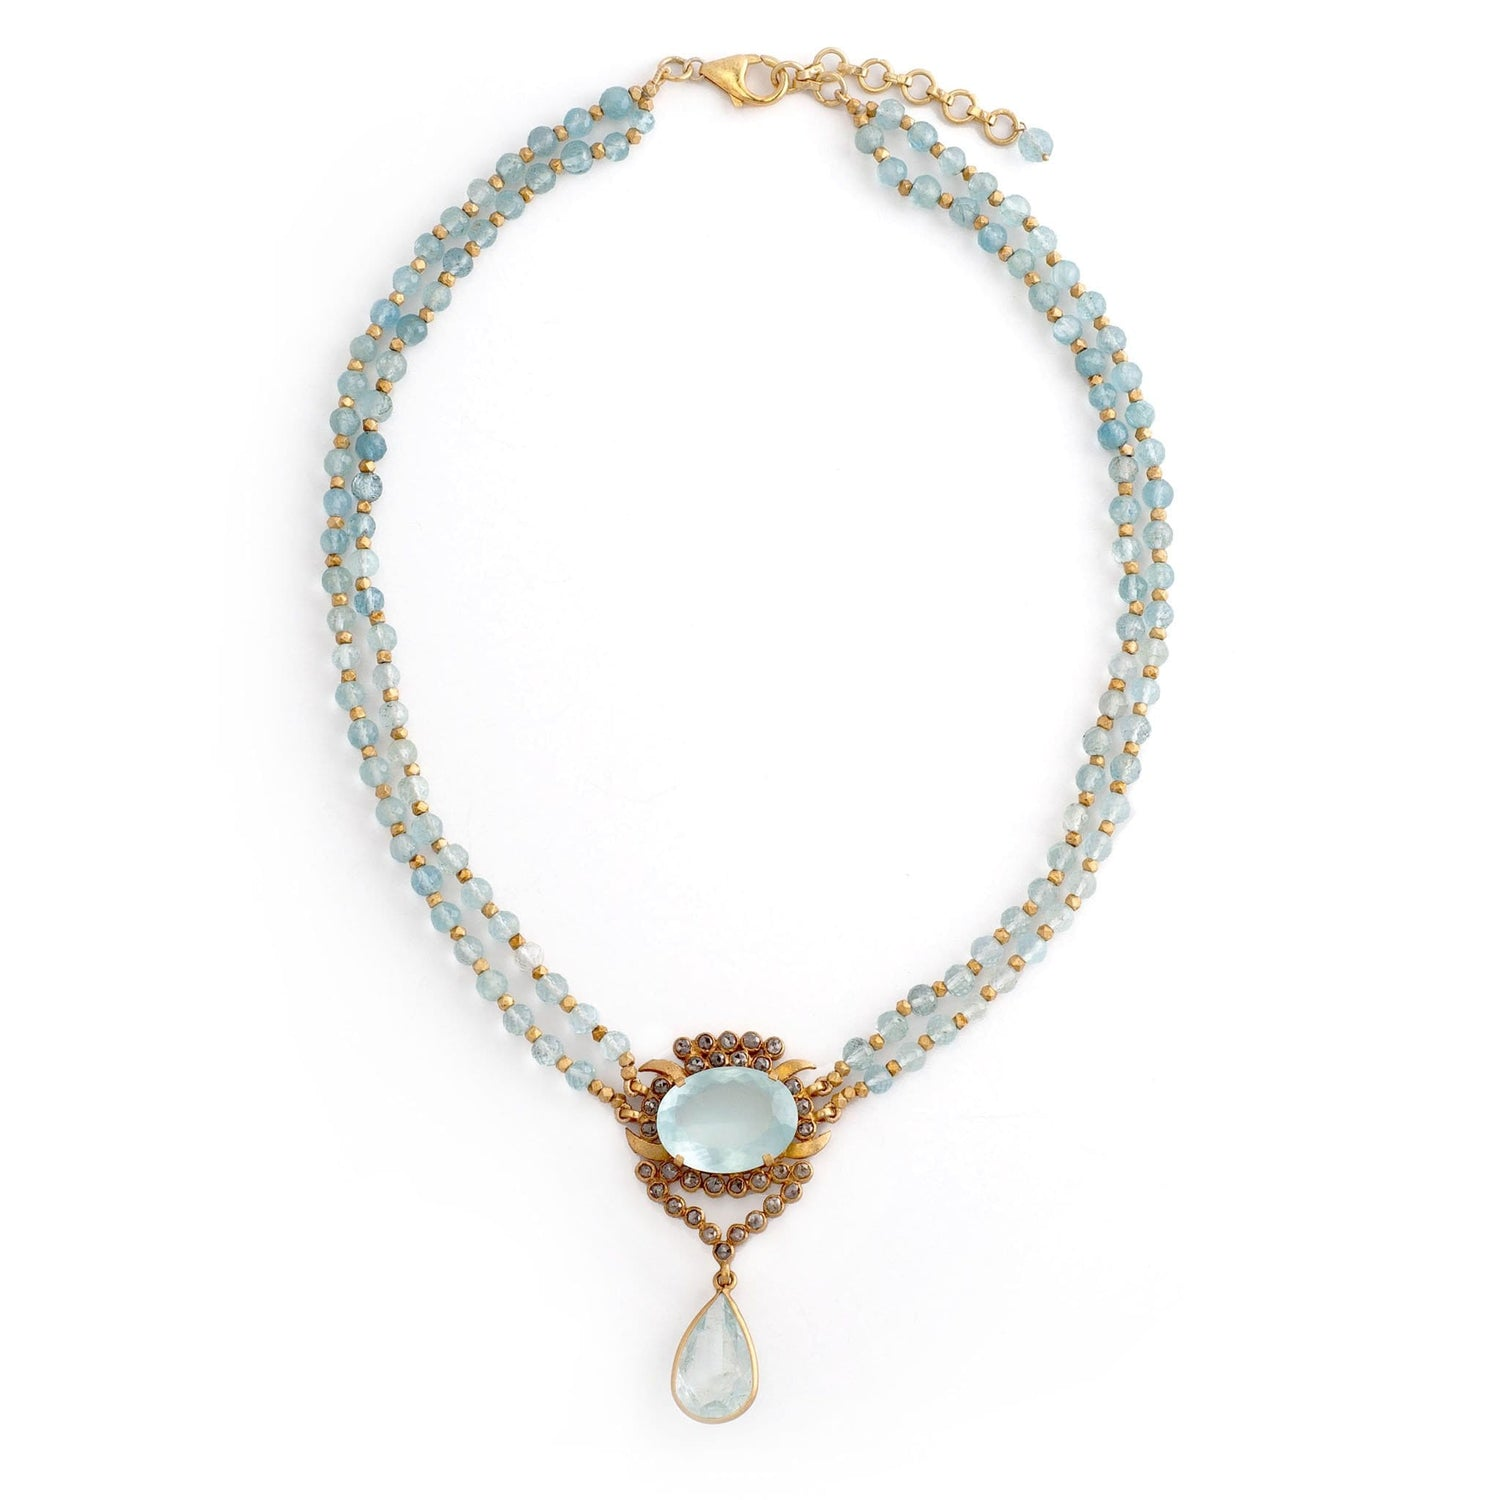 Aquamarine Black Diamond Double Row Necklace - Curated Los Angeles